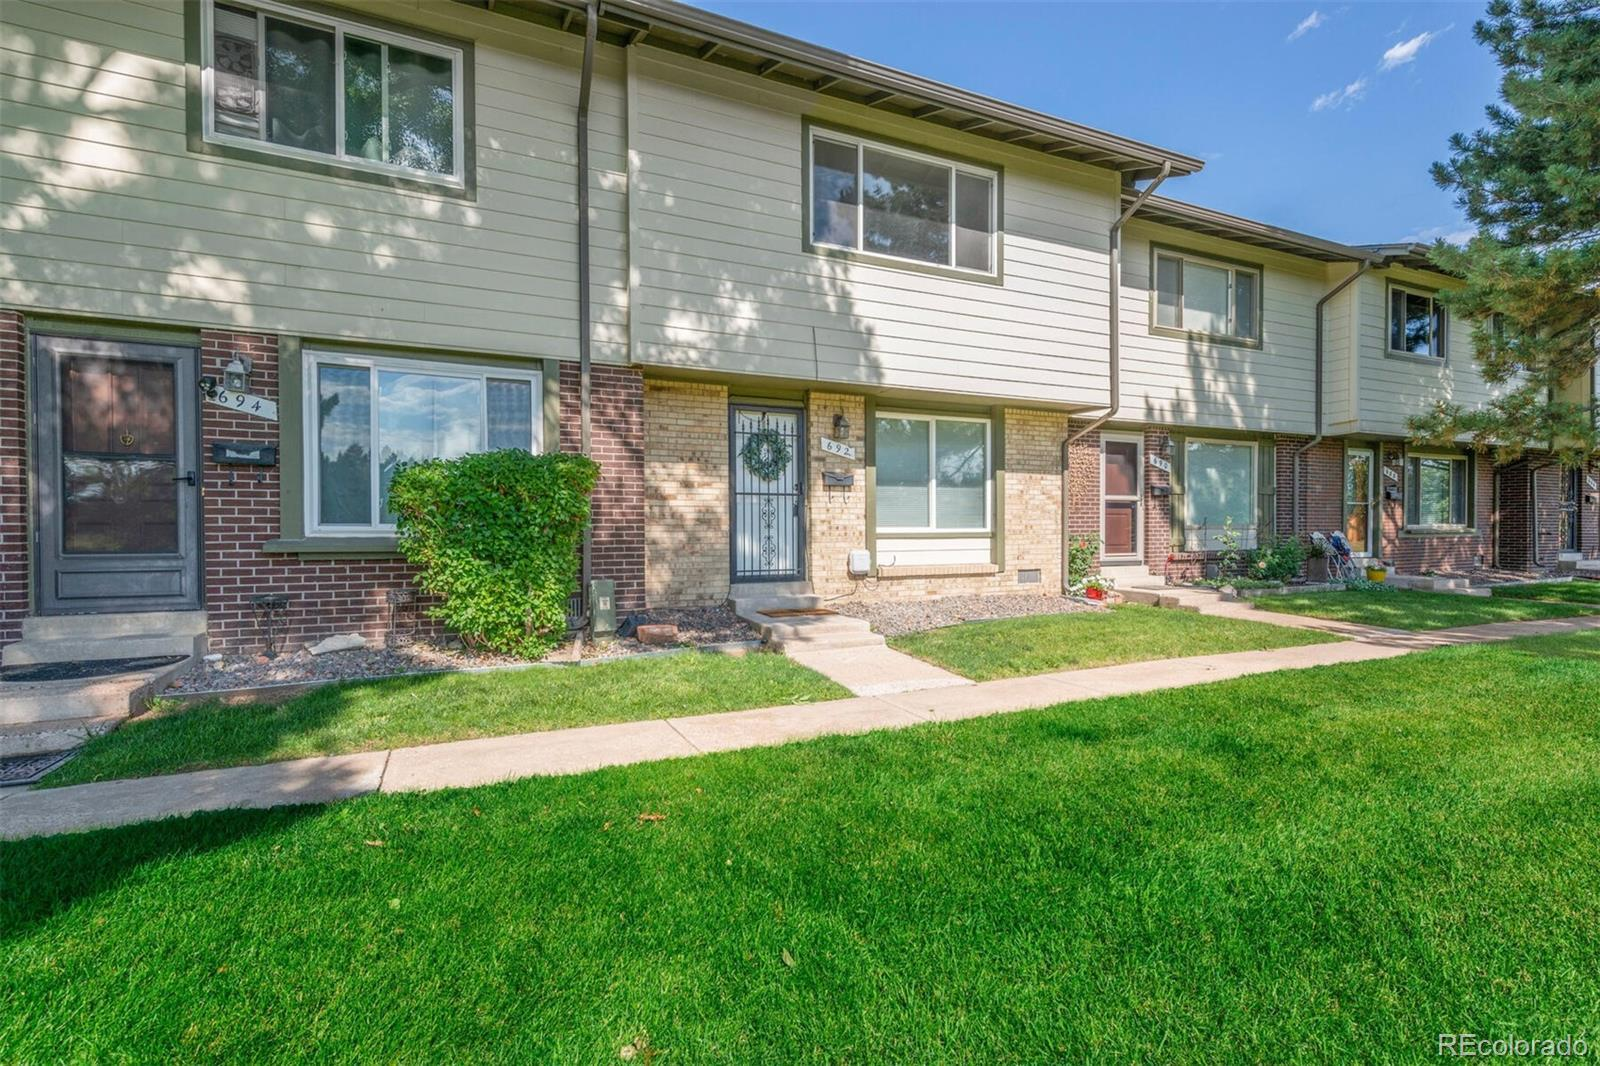 692 S Carr Street, Lakewood, CO 80226 - #: 8911874